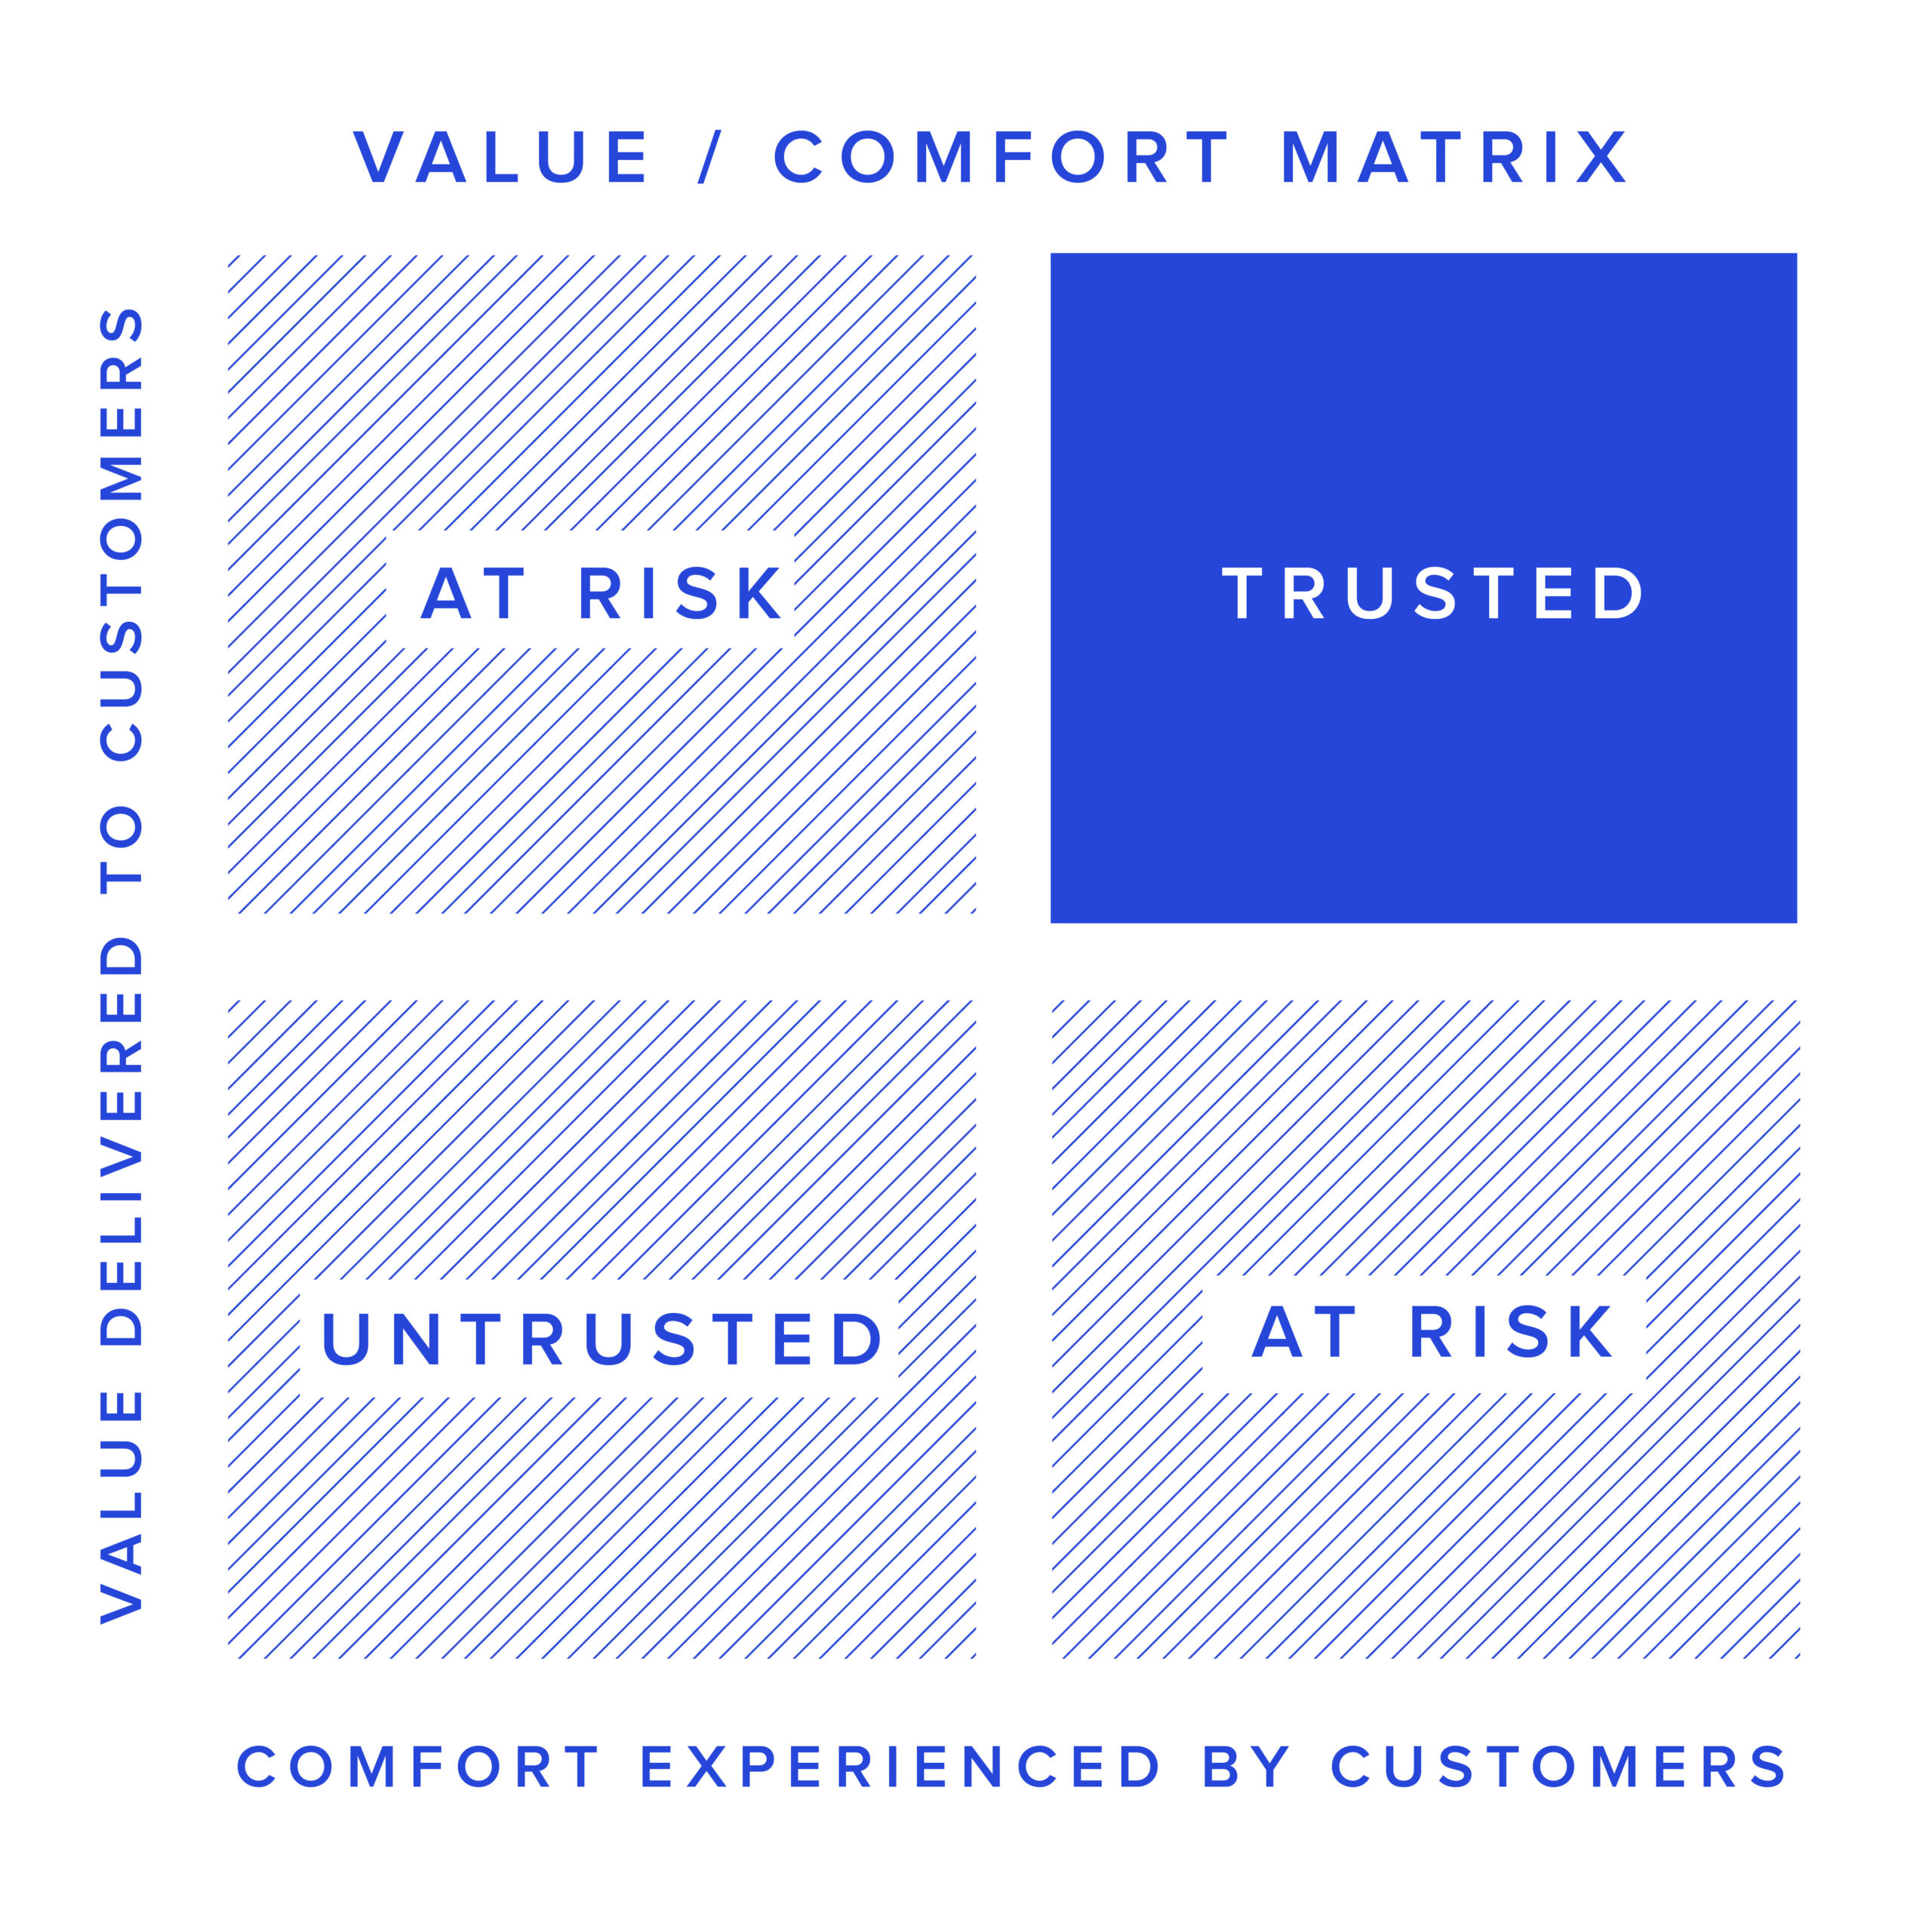 Value/Comfort Matrix. Four quadrants. The horizontal axis is labeled Comfort Experienced by customers. The vertical axis is labeled Value delivered to customers. Bottom left quadrant Untrusted. Bottom right quadrant at risk. Top left quadrant At risk. Top right quadrant Trusted. Trusted is highlighted.